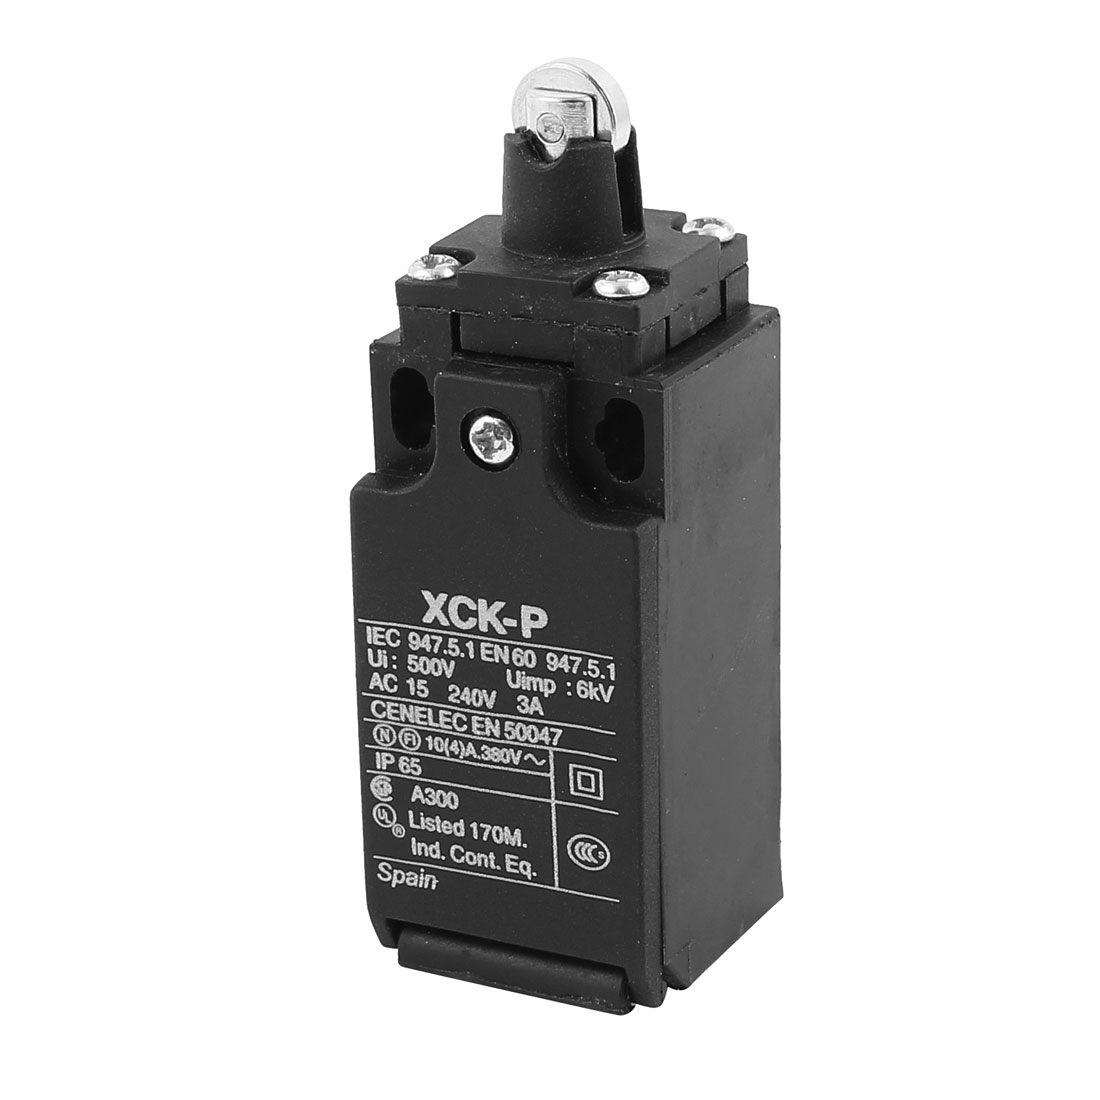 XCK-P Parallel Roller Plunger Actuator Limit Switch AC 240V 3A